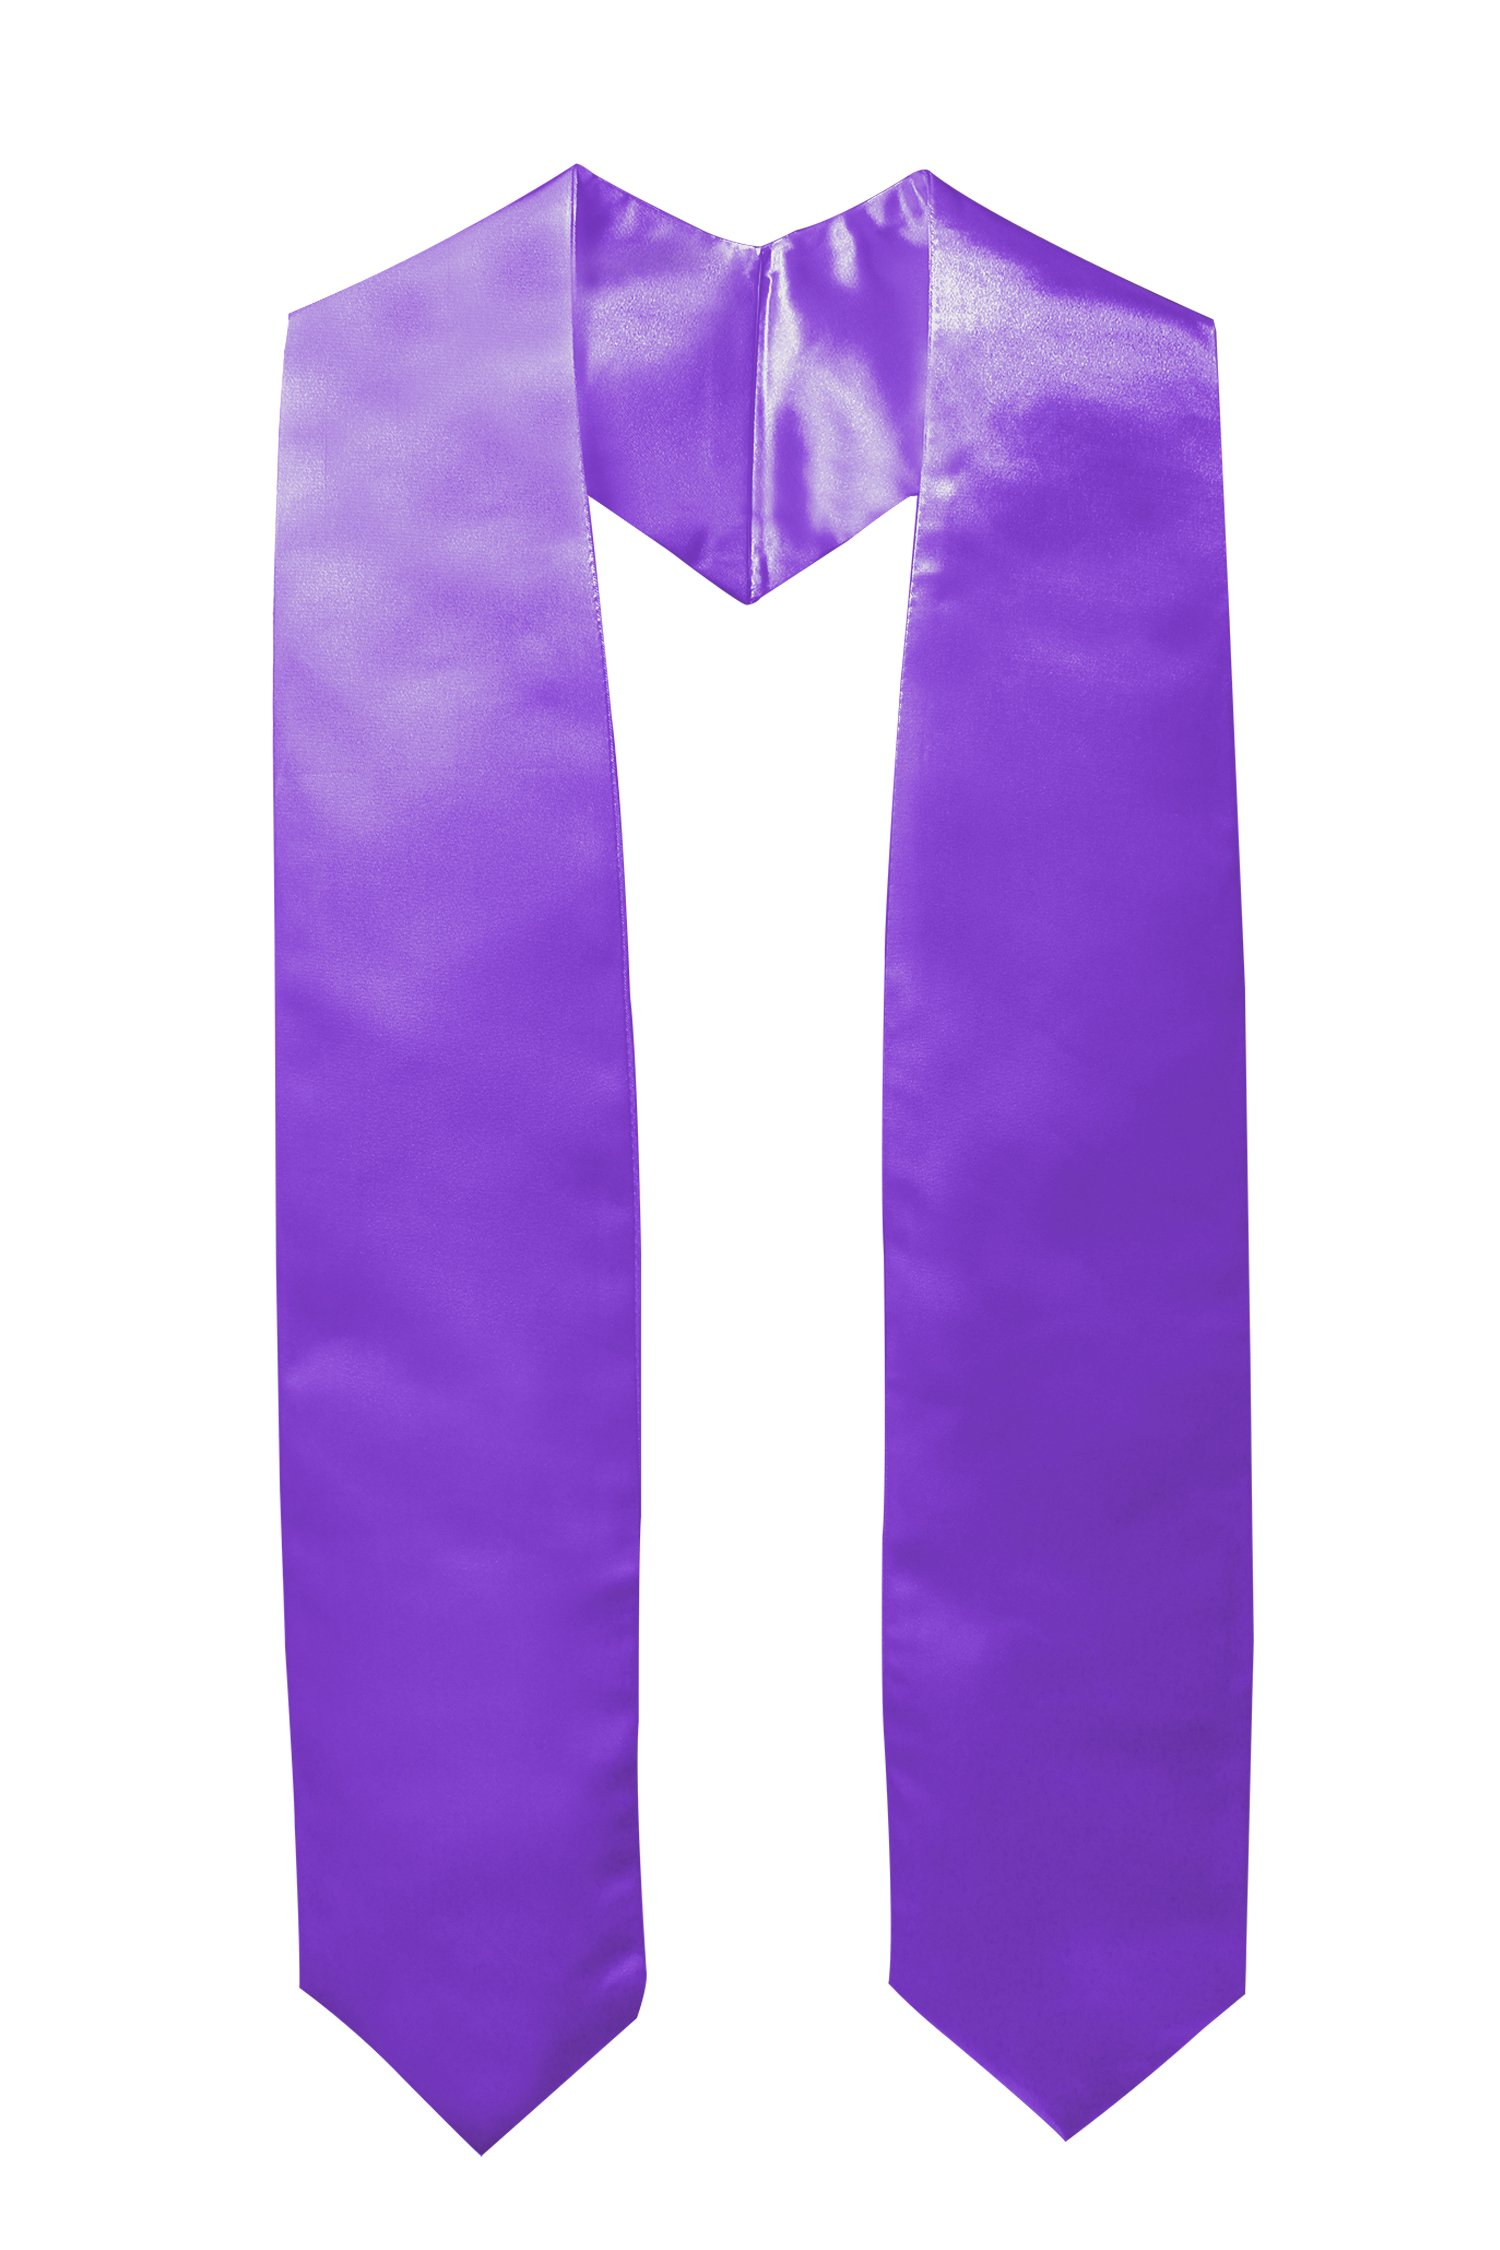 GraduationMall Unisex Adult Plain Graduation Stole Sash 60""